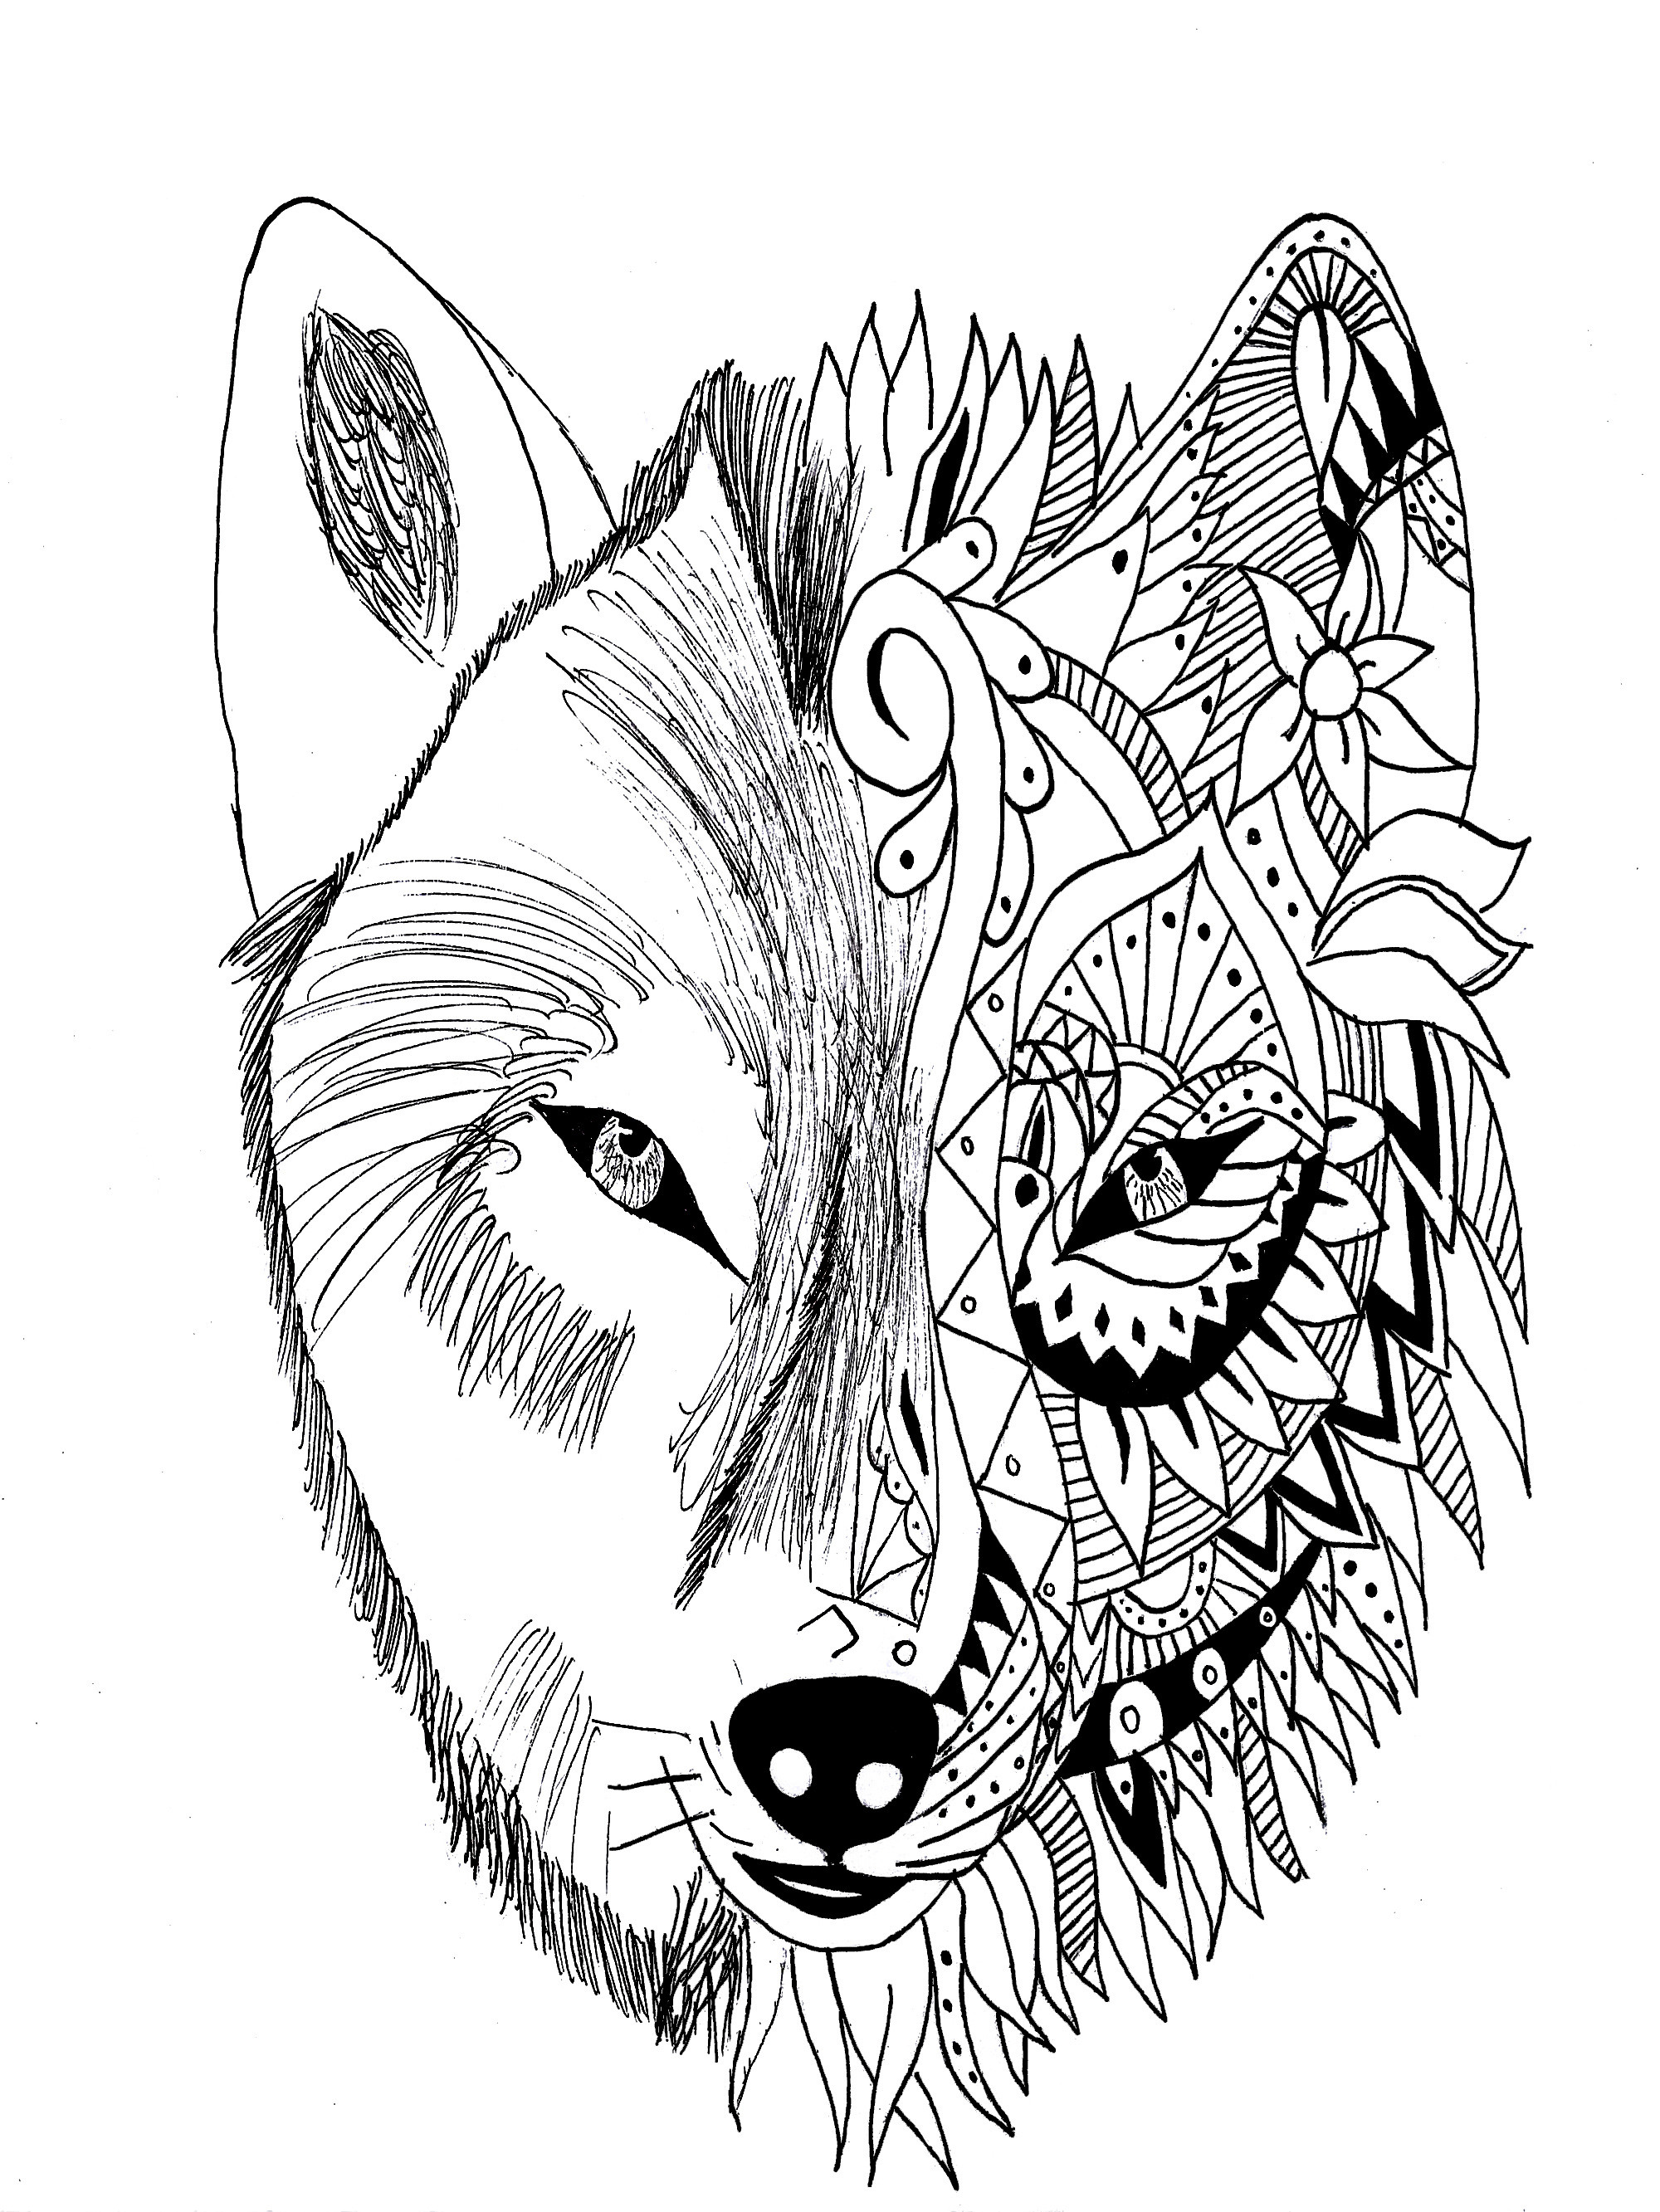 Tattoo Coloring Pages For Adults  Tattoo wolf krissy Tattoos Adult Coloring Pages